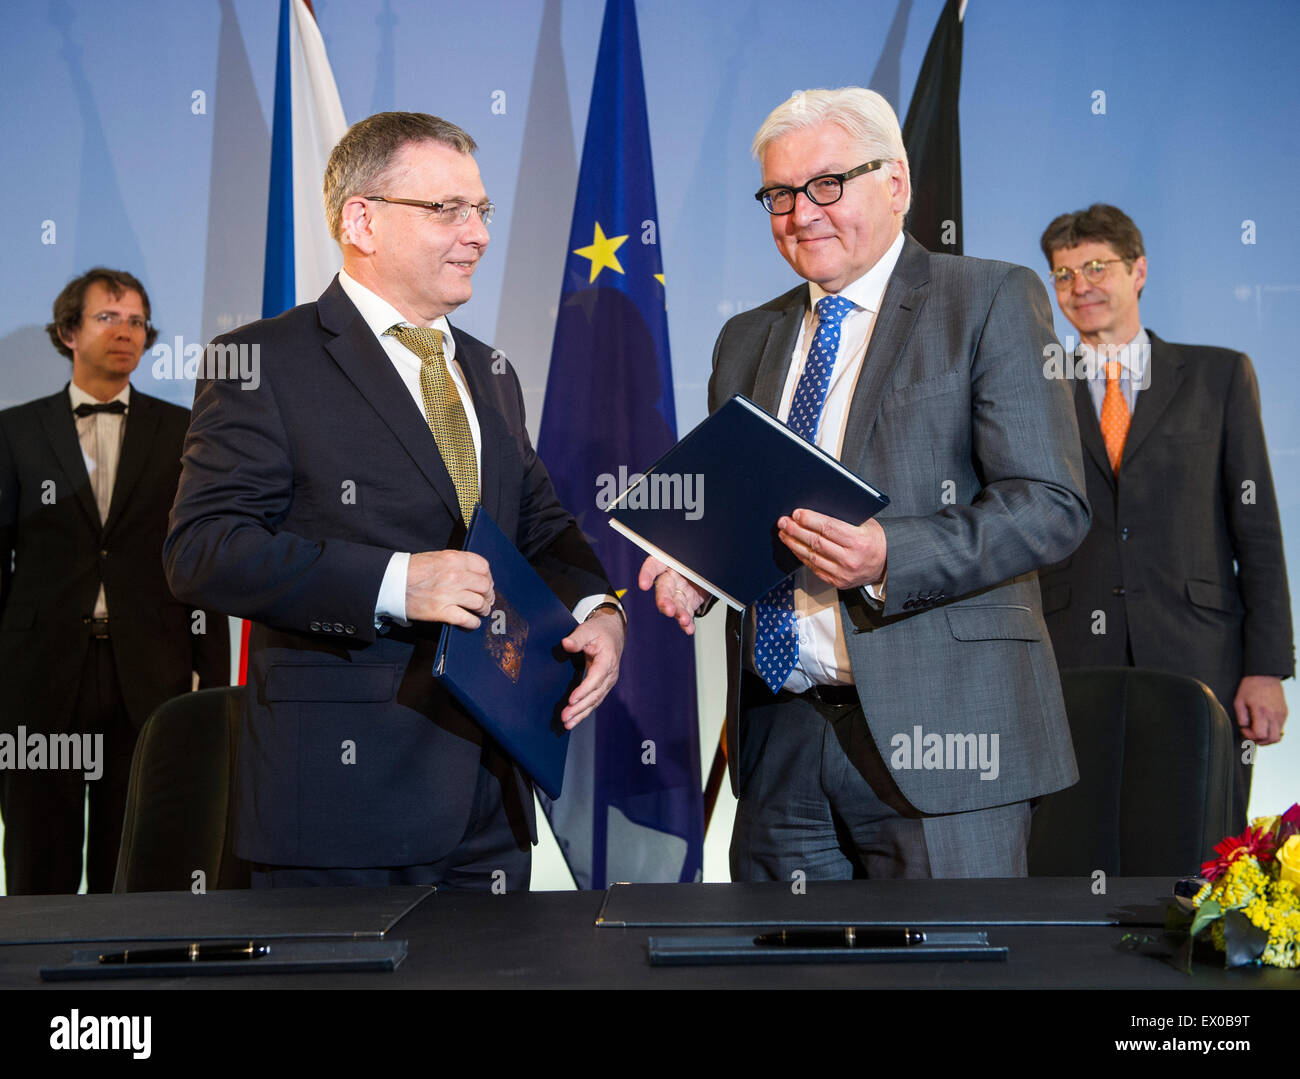 Berlin, Germany. 03rd July, 2015. German Foreign Minister Frank-Walter Steinmeier (SPD, R) and Czech counterpart - Stock Image